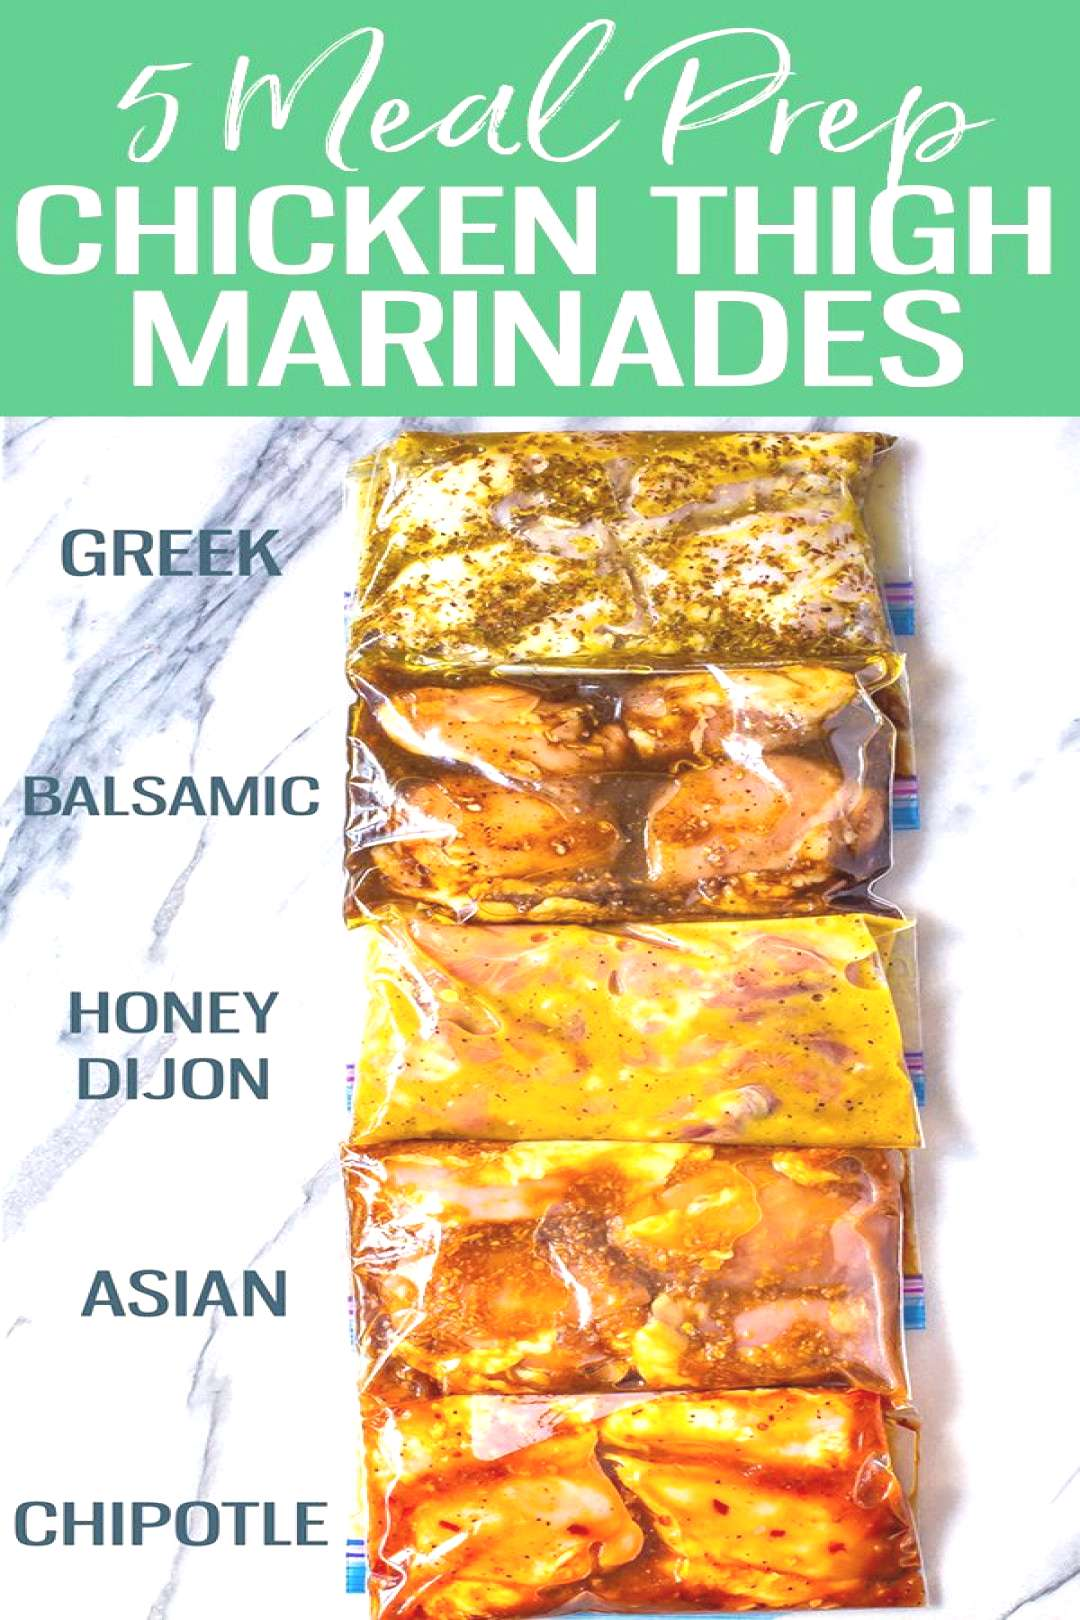 These Delicious Chicken Thigh Marinades are perfect for boneless, skinless chicken. Try Asian, Chip